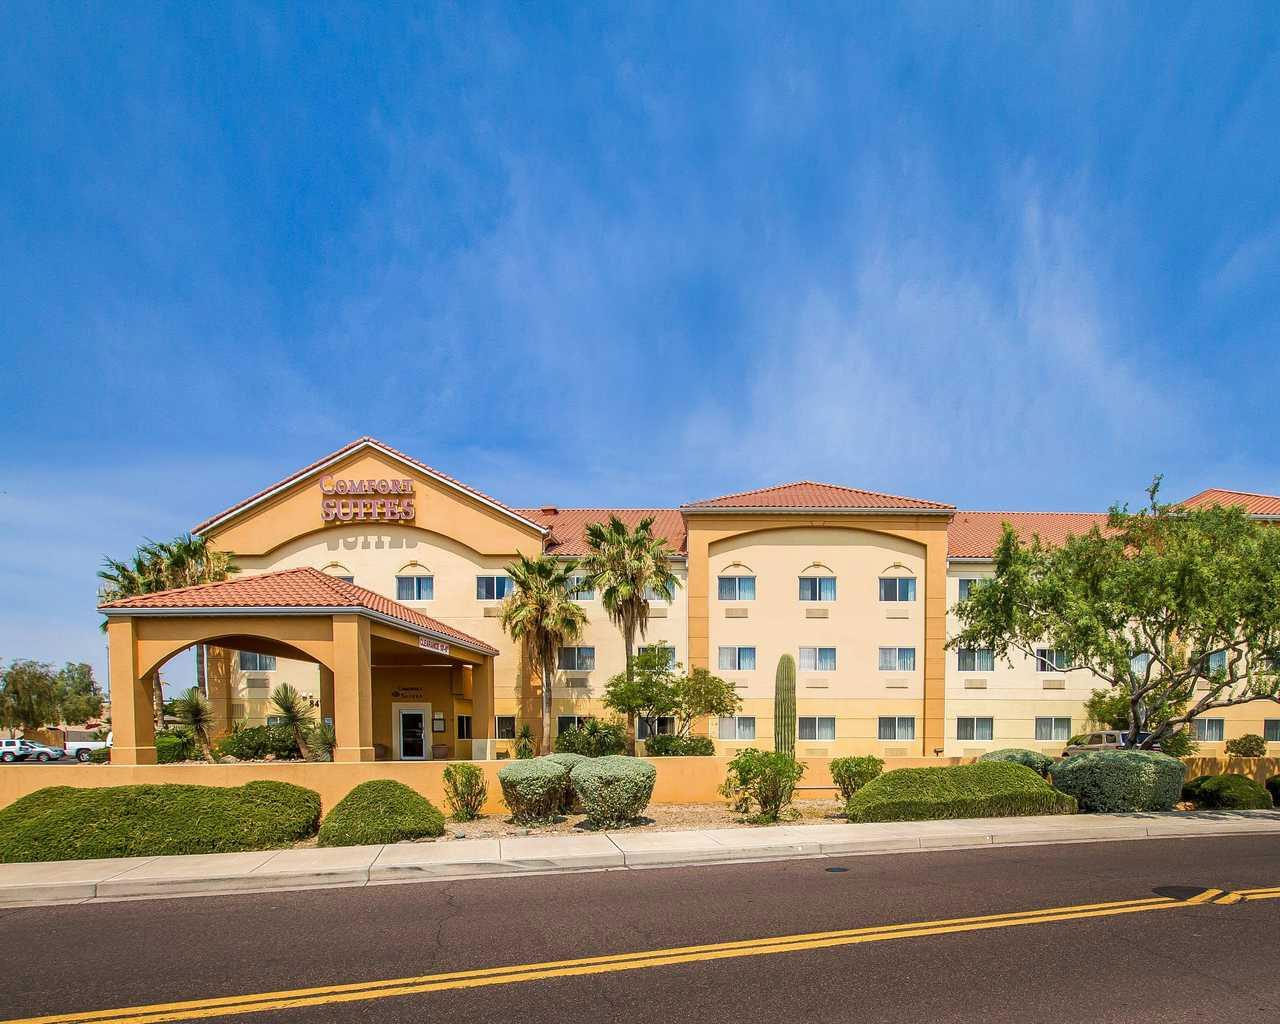 Hotels Near Scottsdale Sports Complex